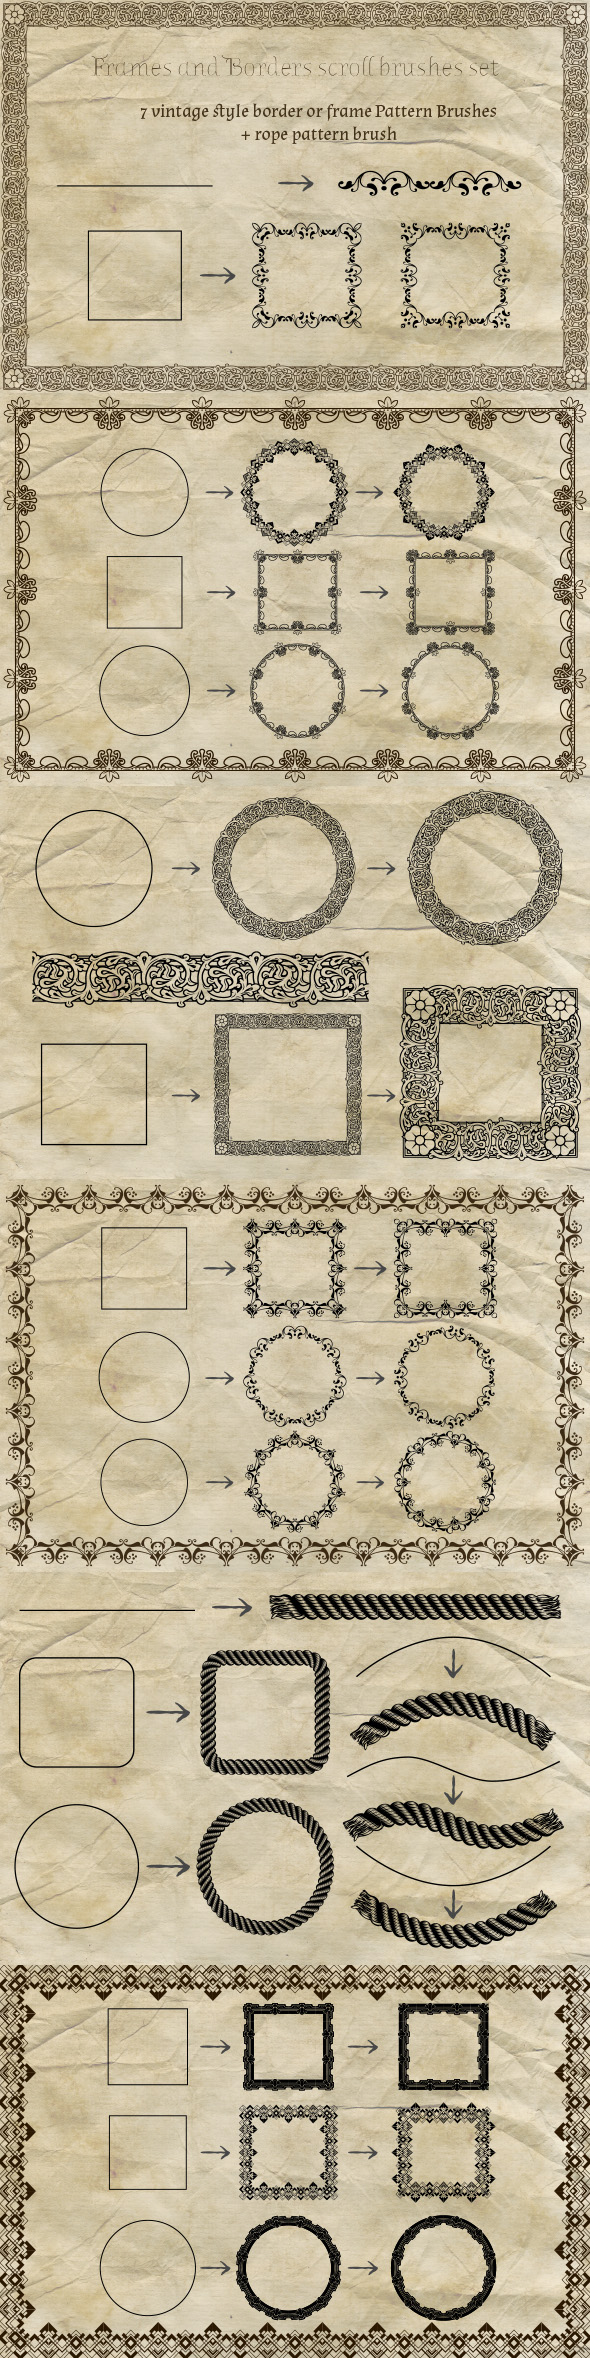 Vintage Border Frames Brushes Pack - Brushes Illustrator